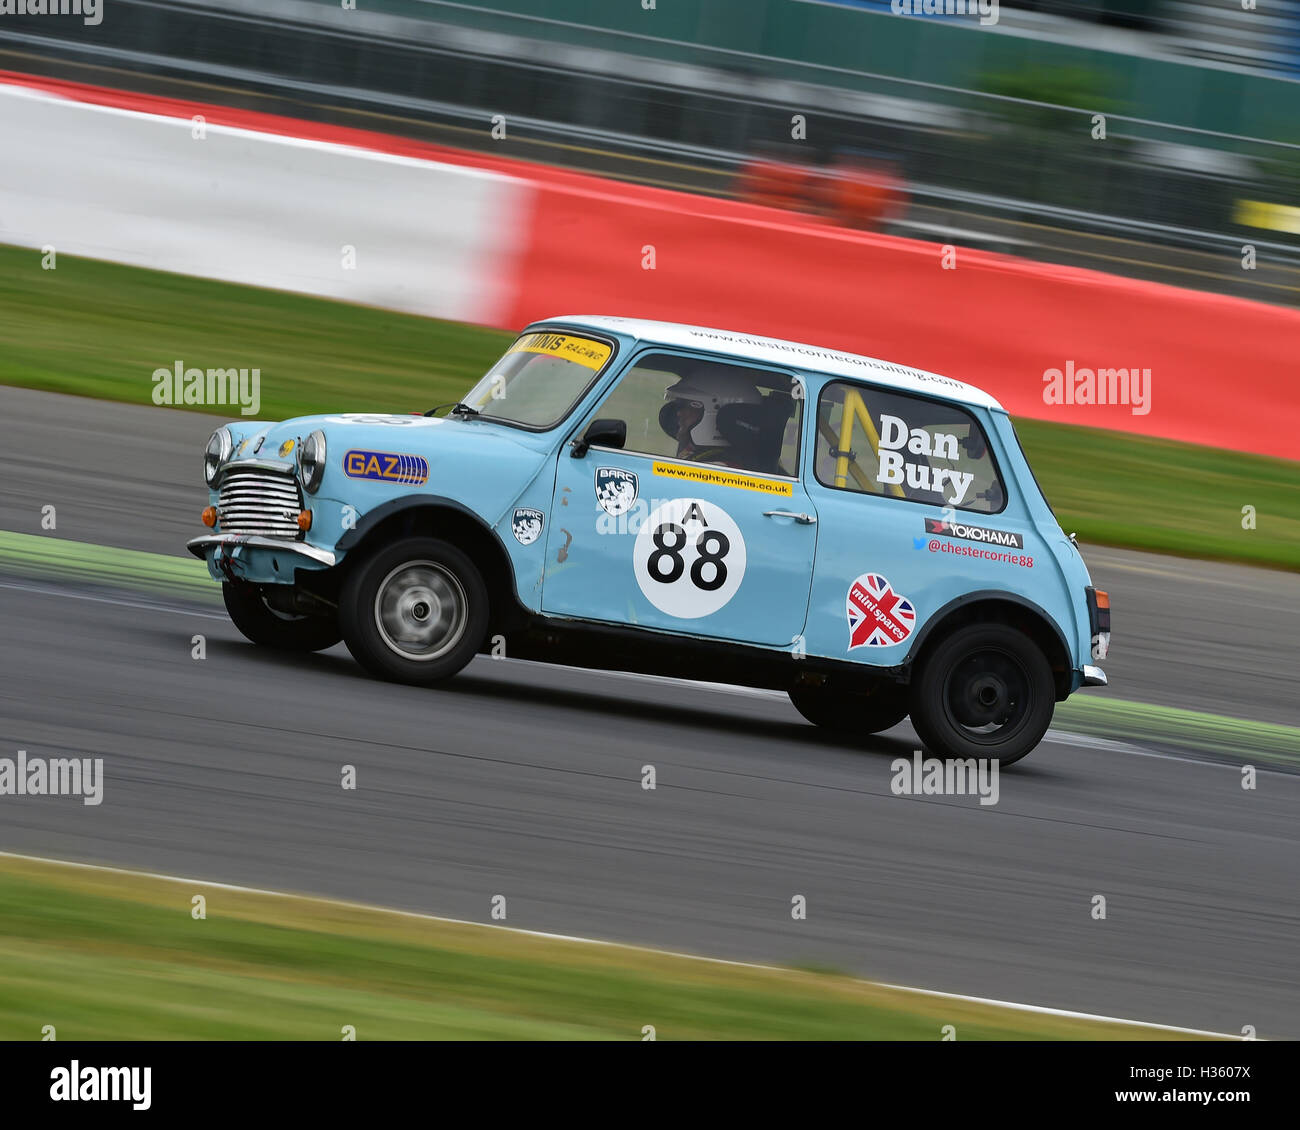 Dan Bury, Mighty Mini, 1275, Mighty Mini Championship, Saturday, Silverstone, Silverstone truck festival, Saturday, - Stock Image